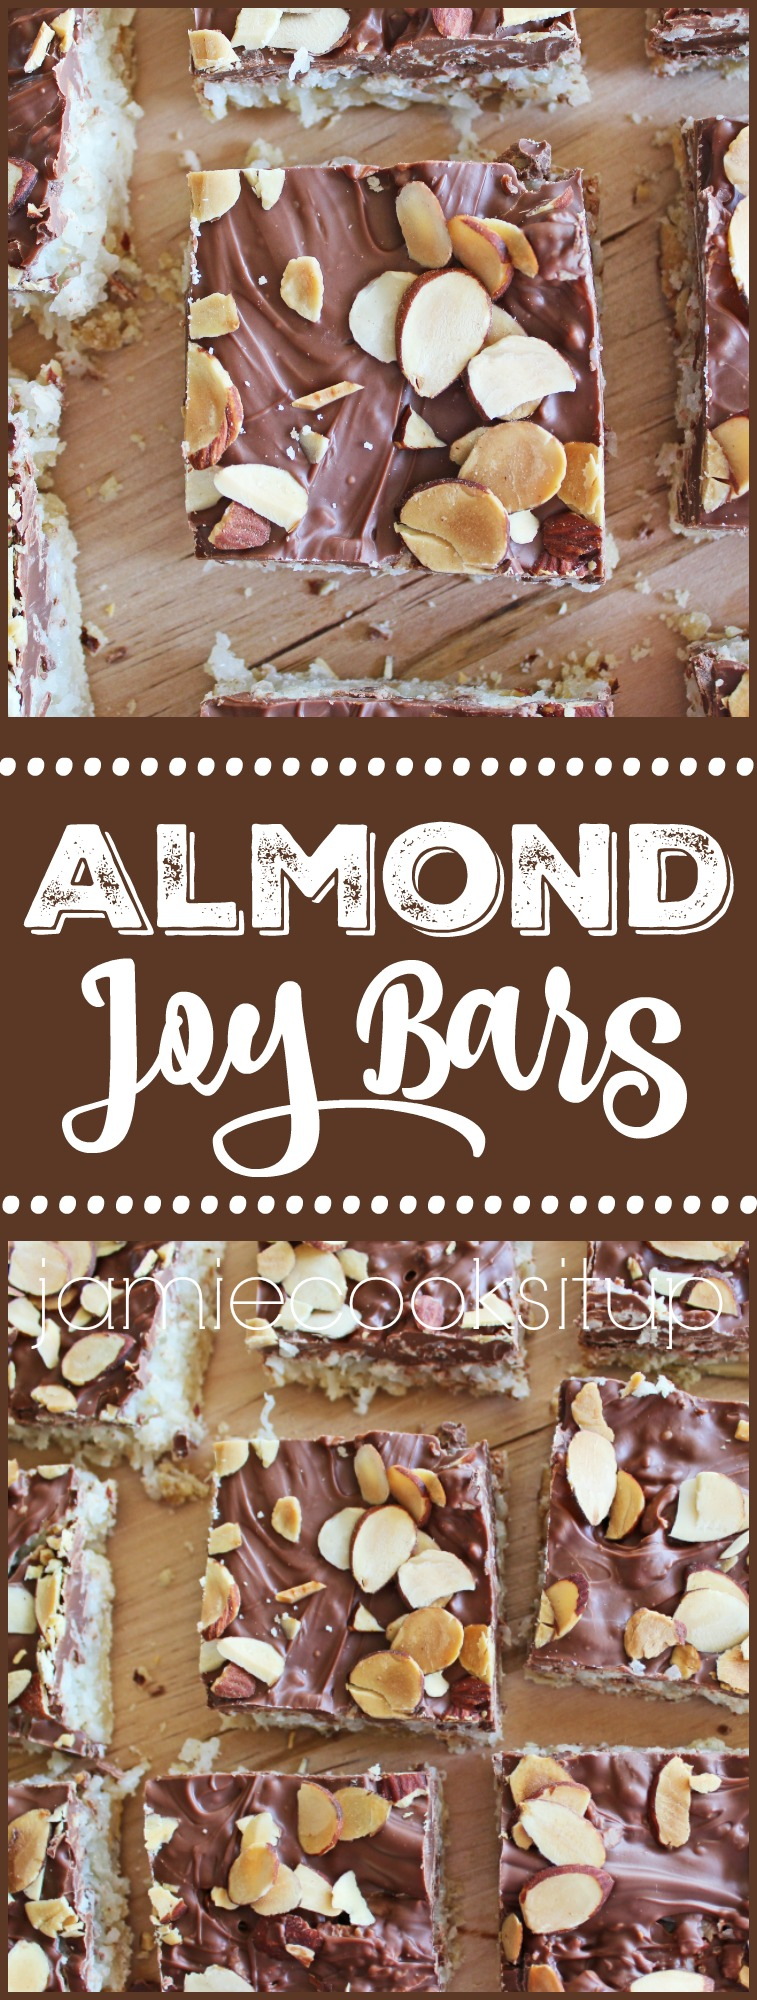 Almond Joy Bars from Jamie Cooks It Up